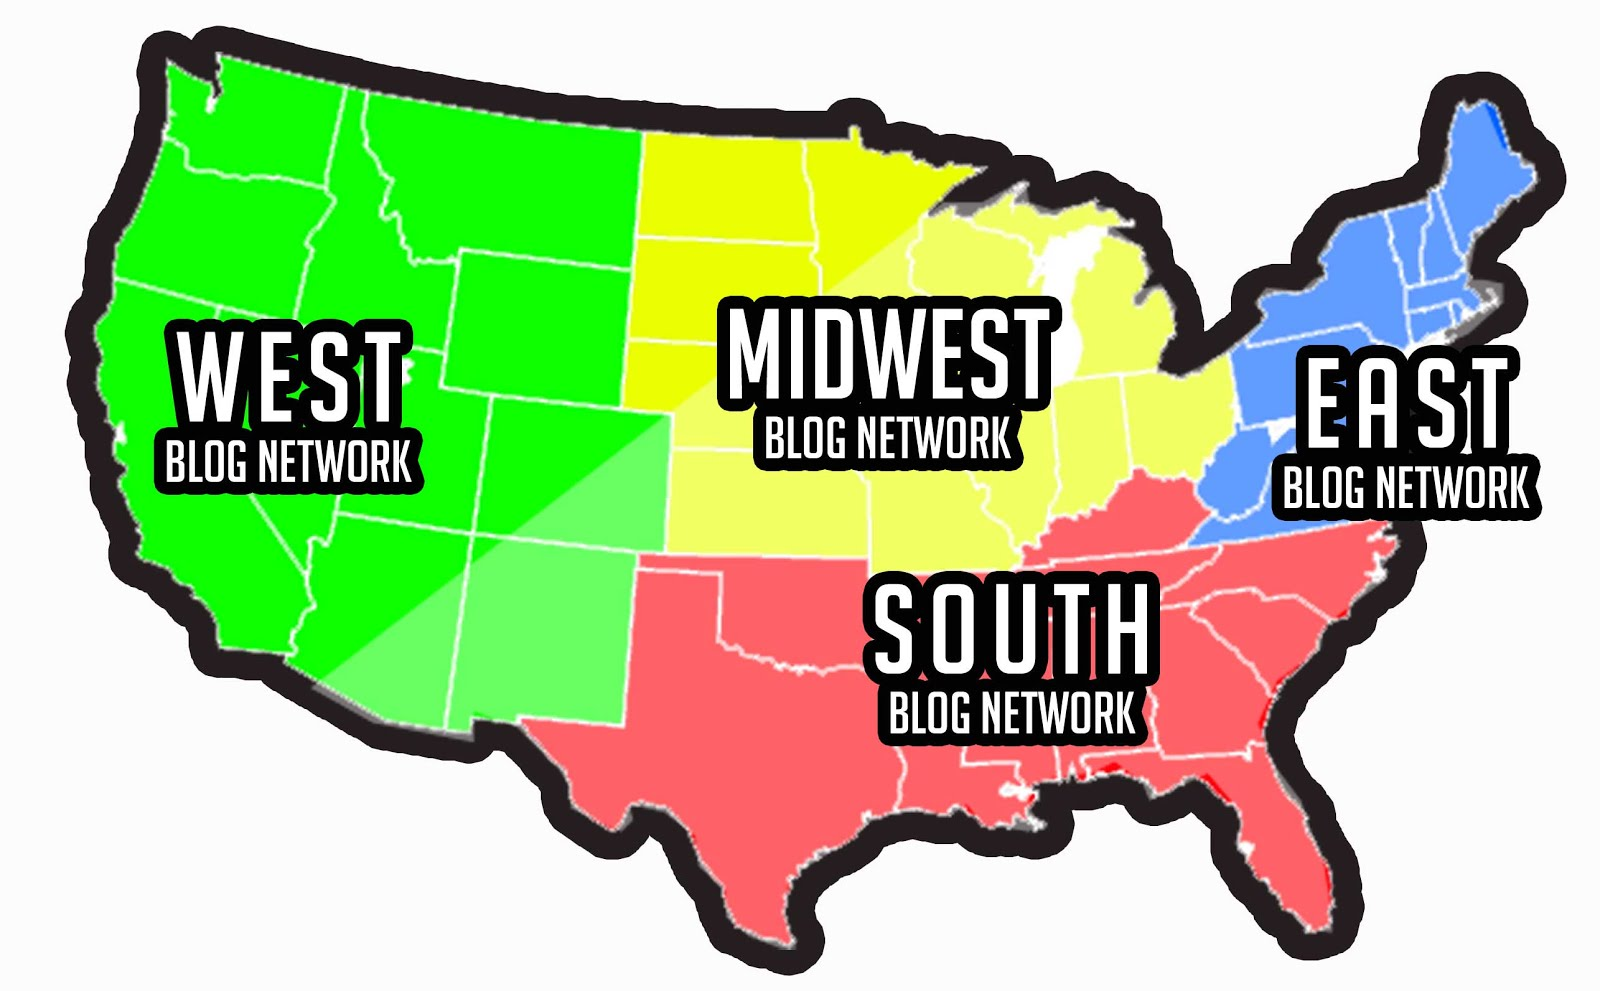 USA BLOG NETWORKS